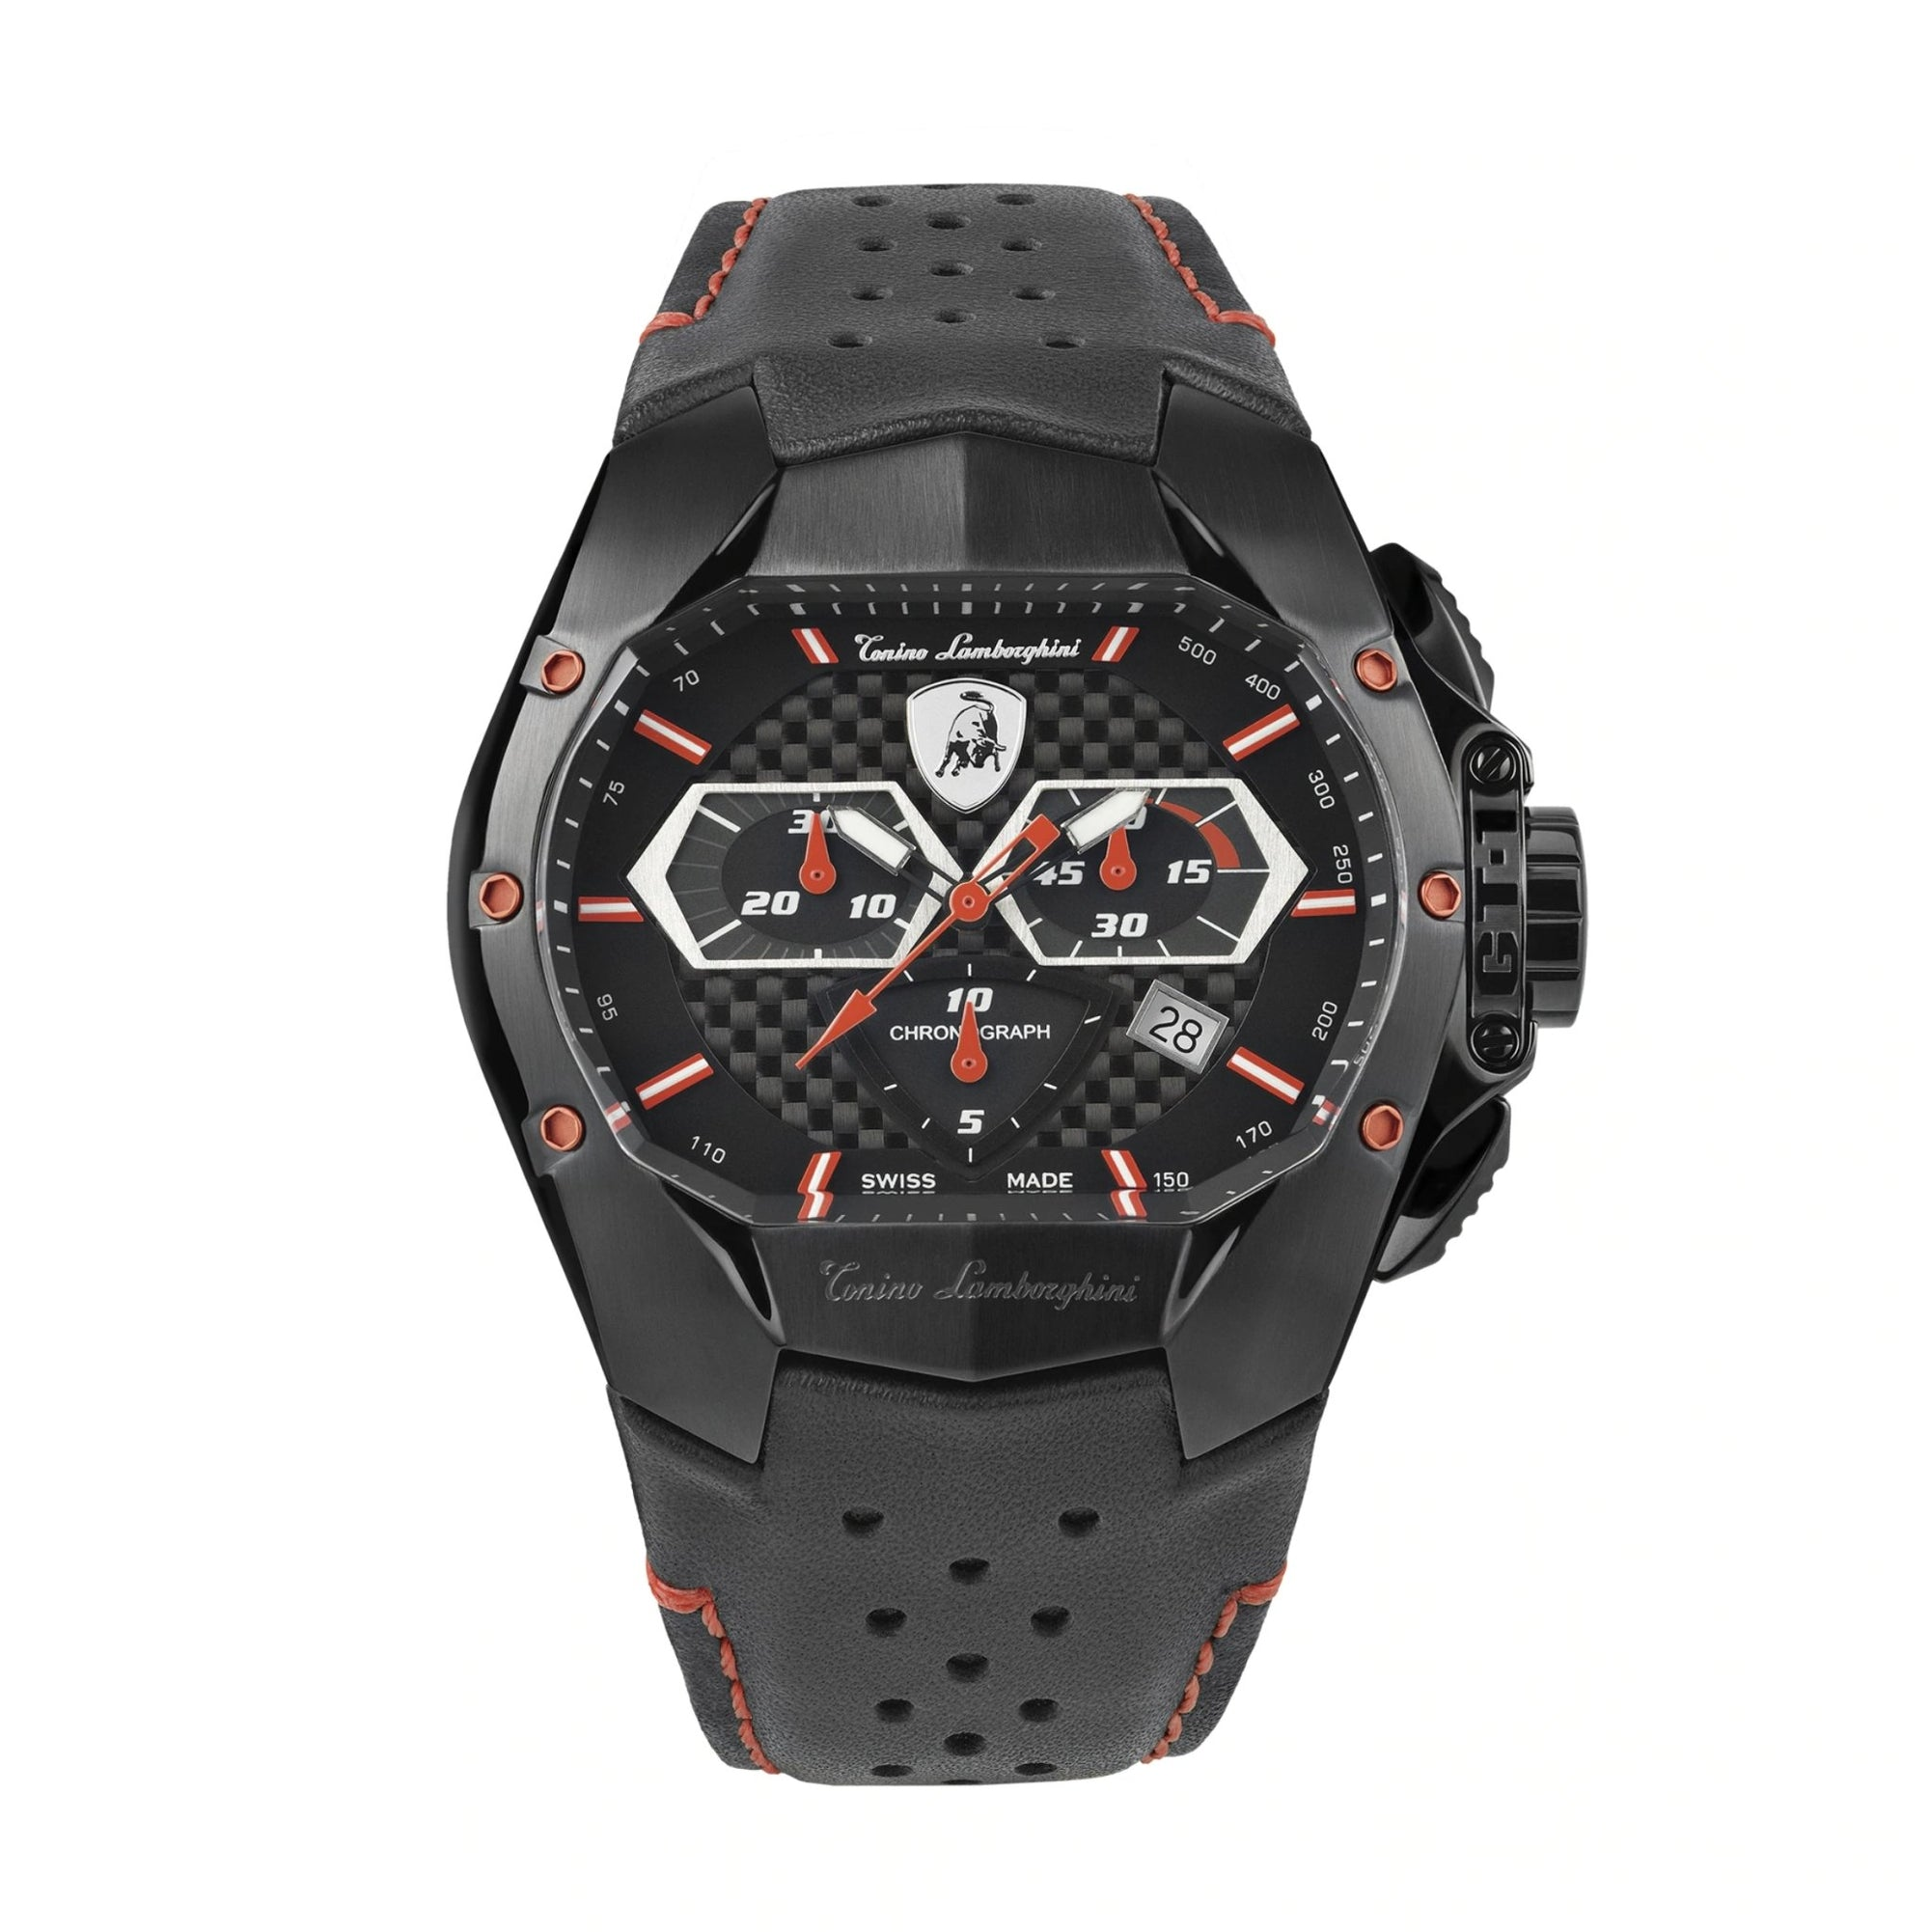 Tonino Lamborghini GT1 Chronograph Red - Watches & Crystals